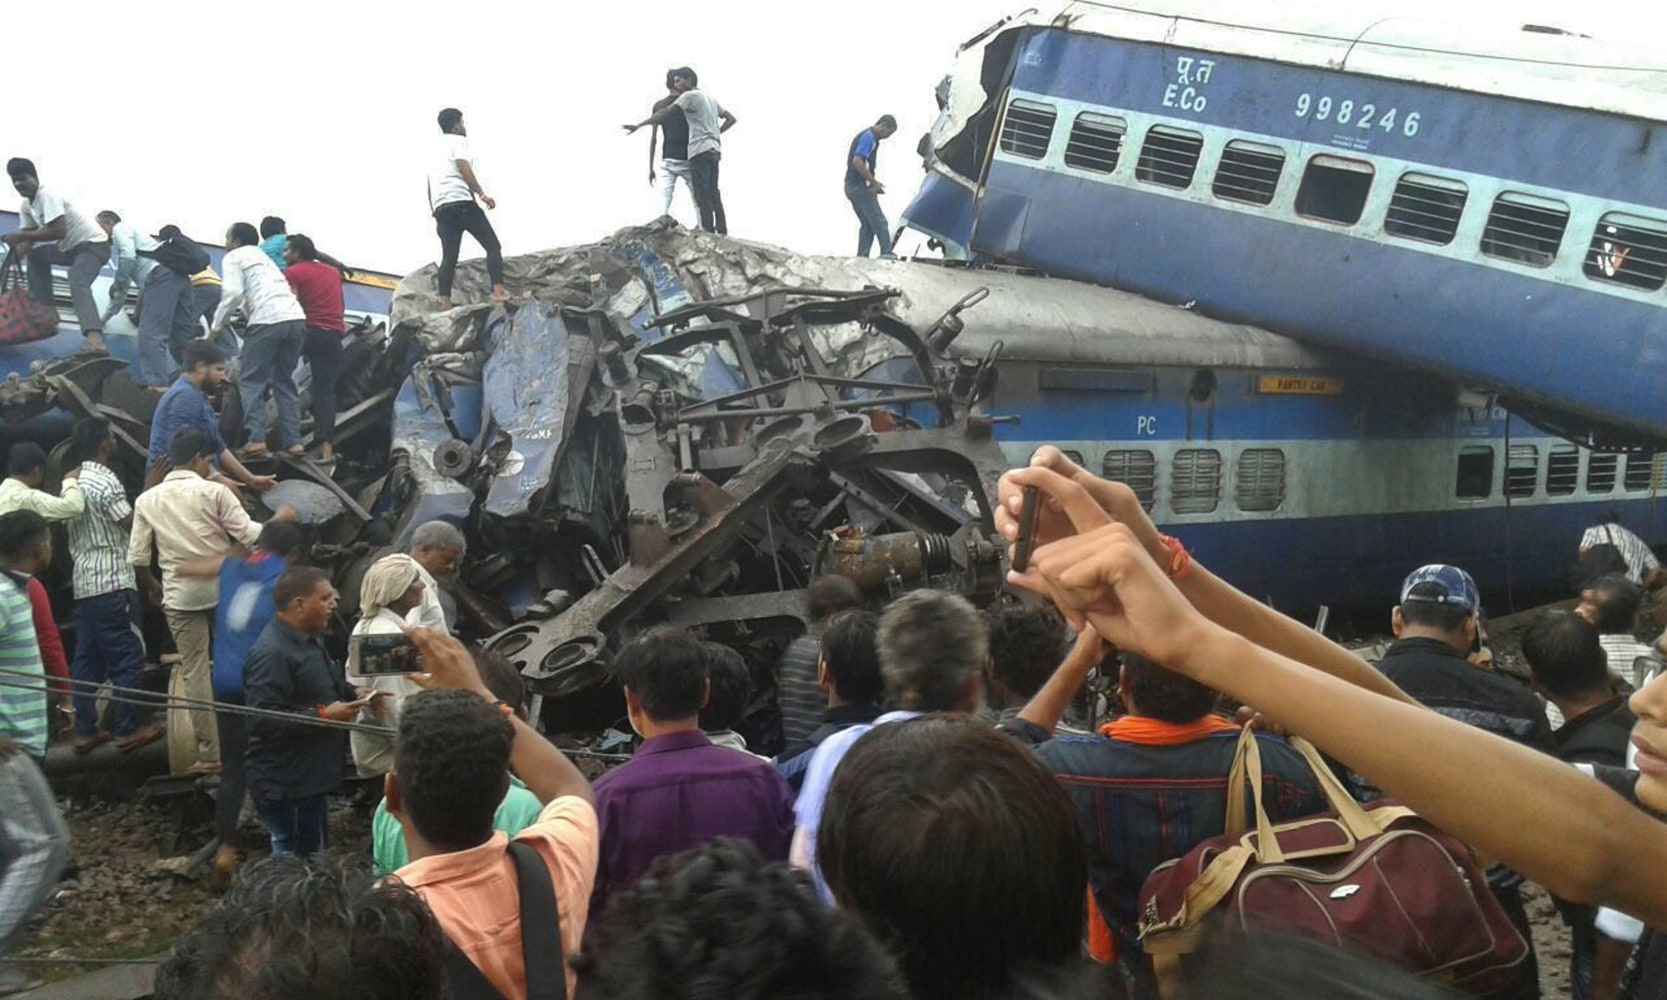 23 dead, 64 injured as express train derails in India